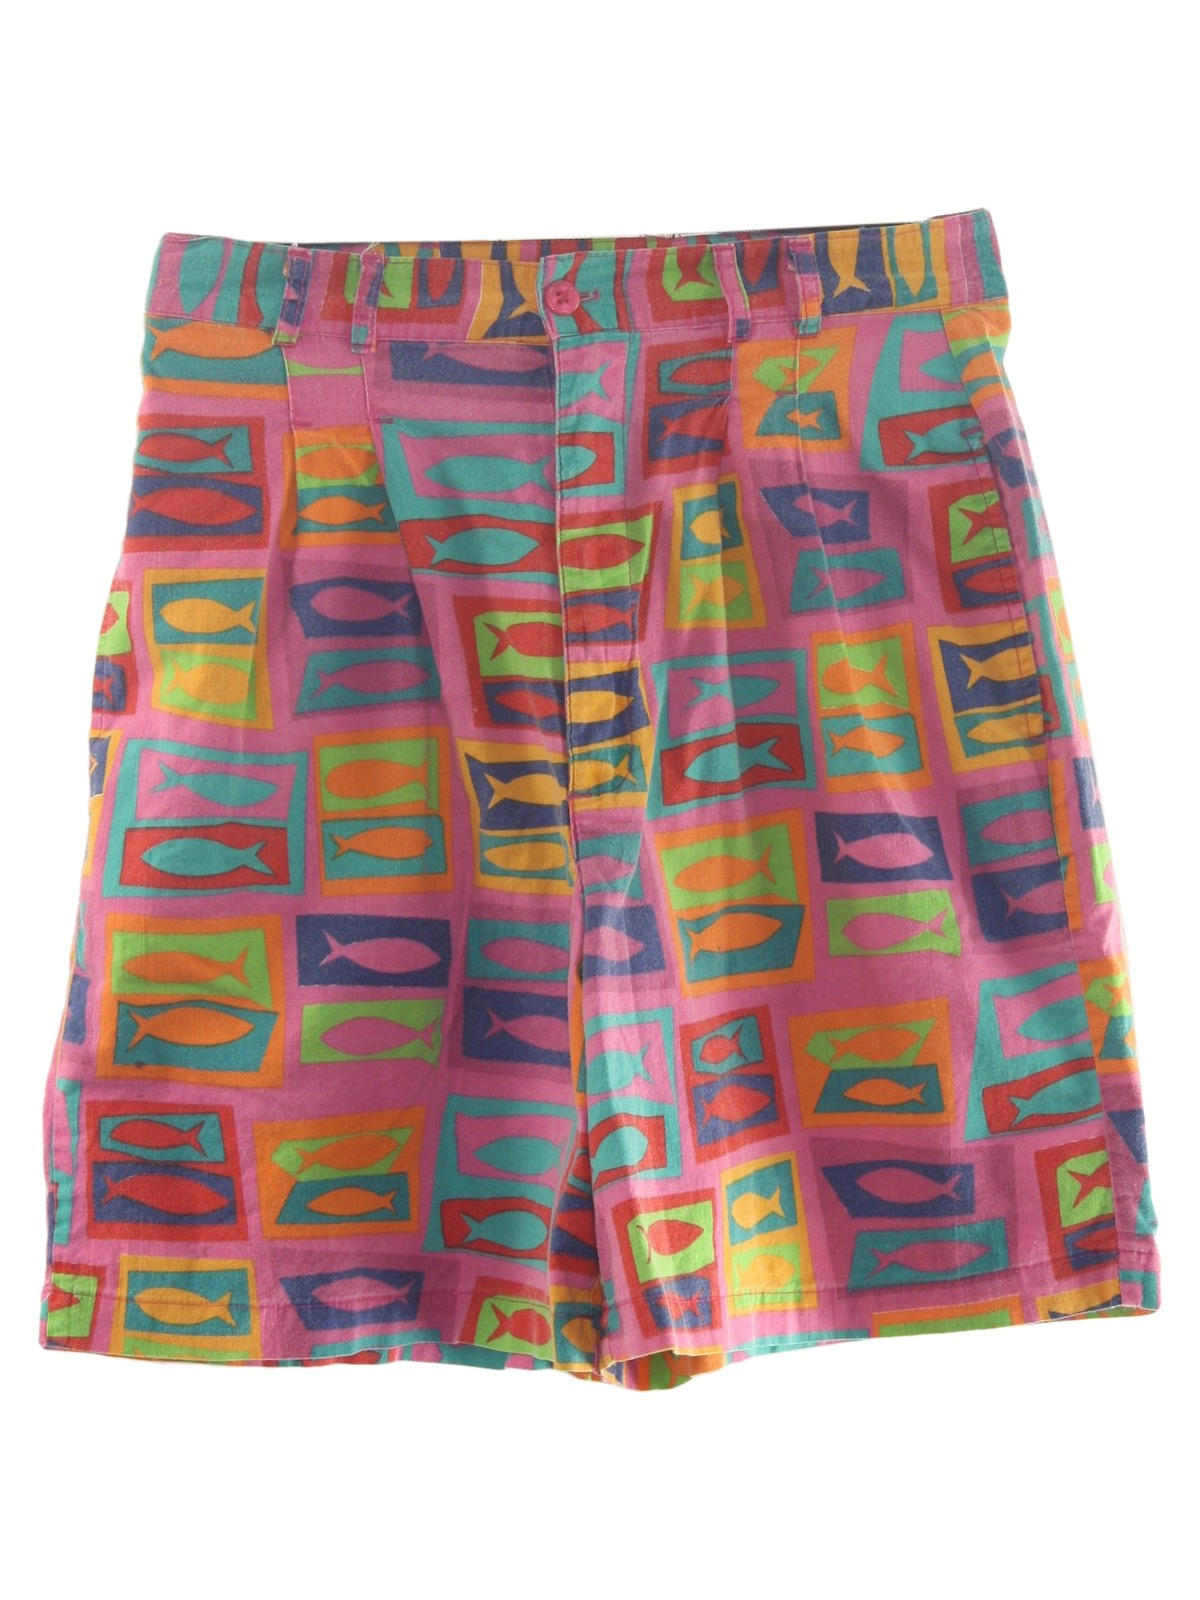 66233e4d6167 Vintage Bugle Boy Eighties Shorts: Late 80s -Bugle Boy- Womens pink ...